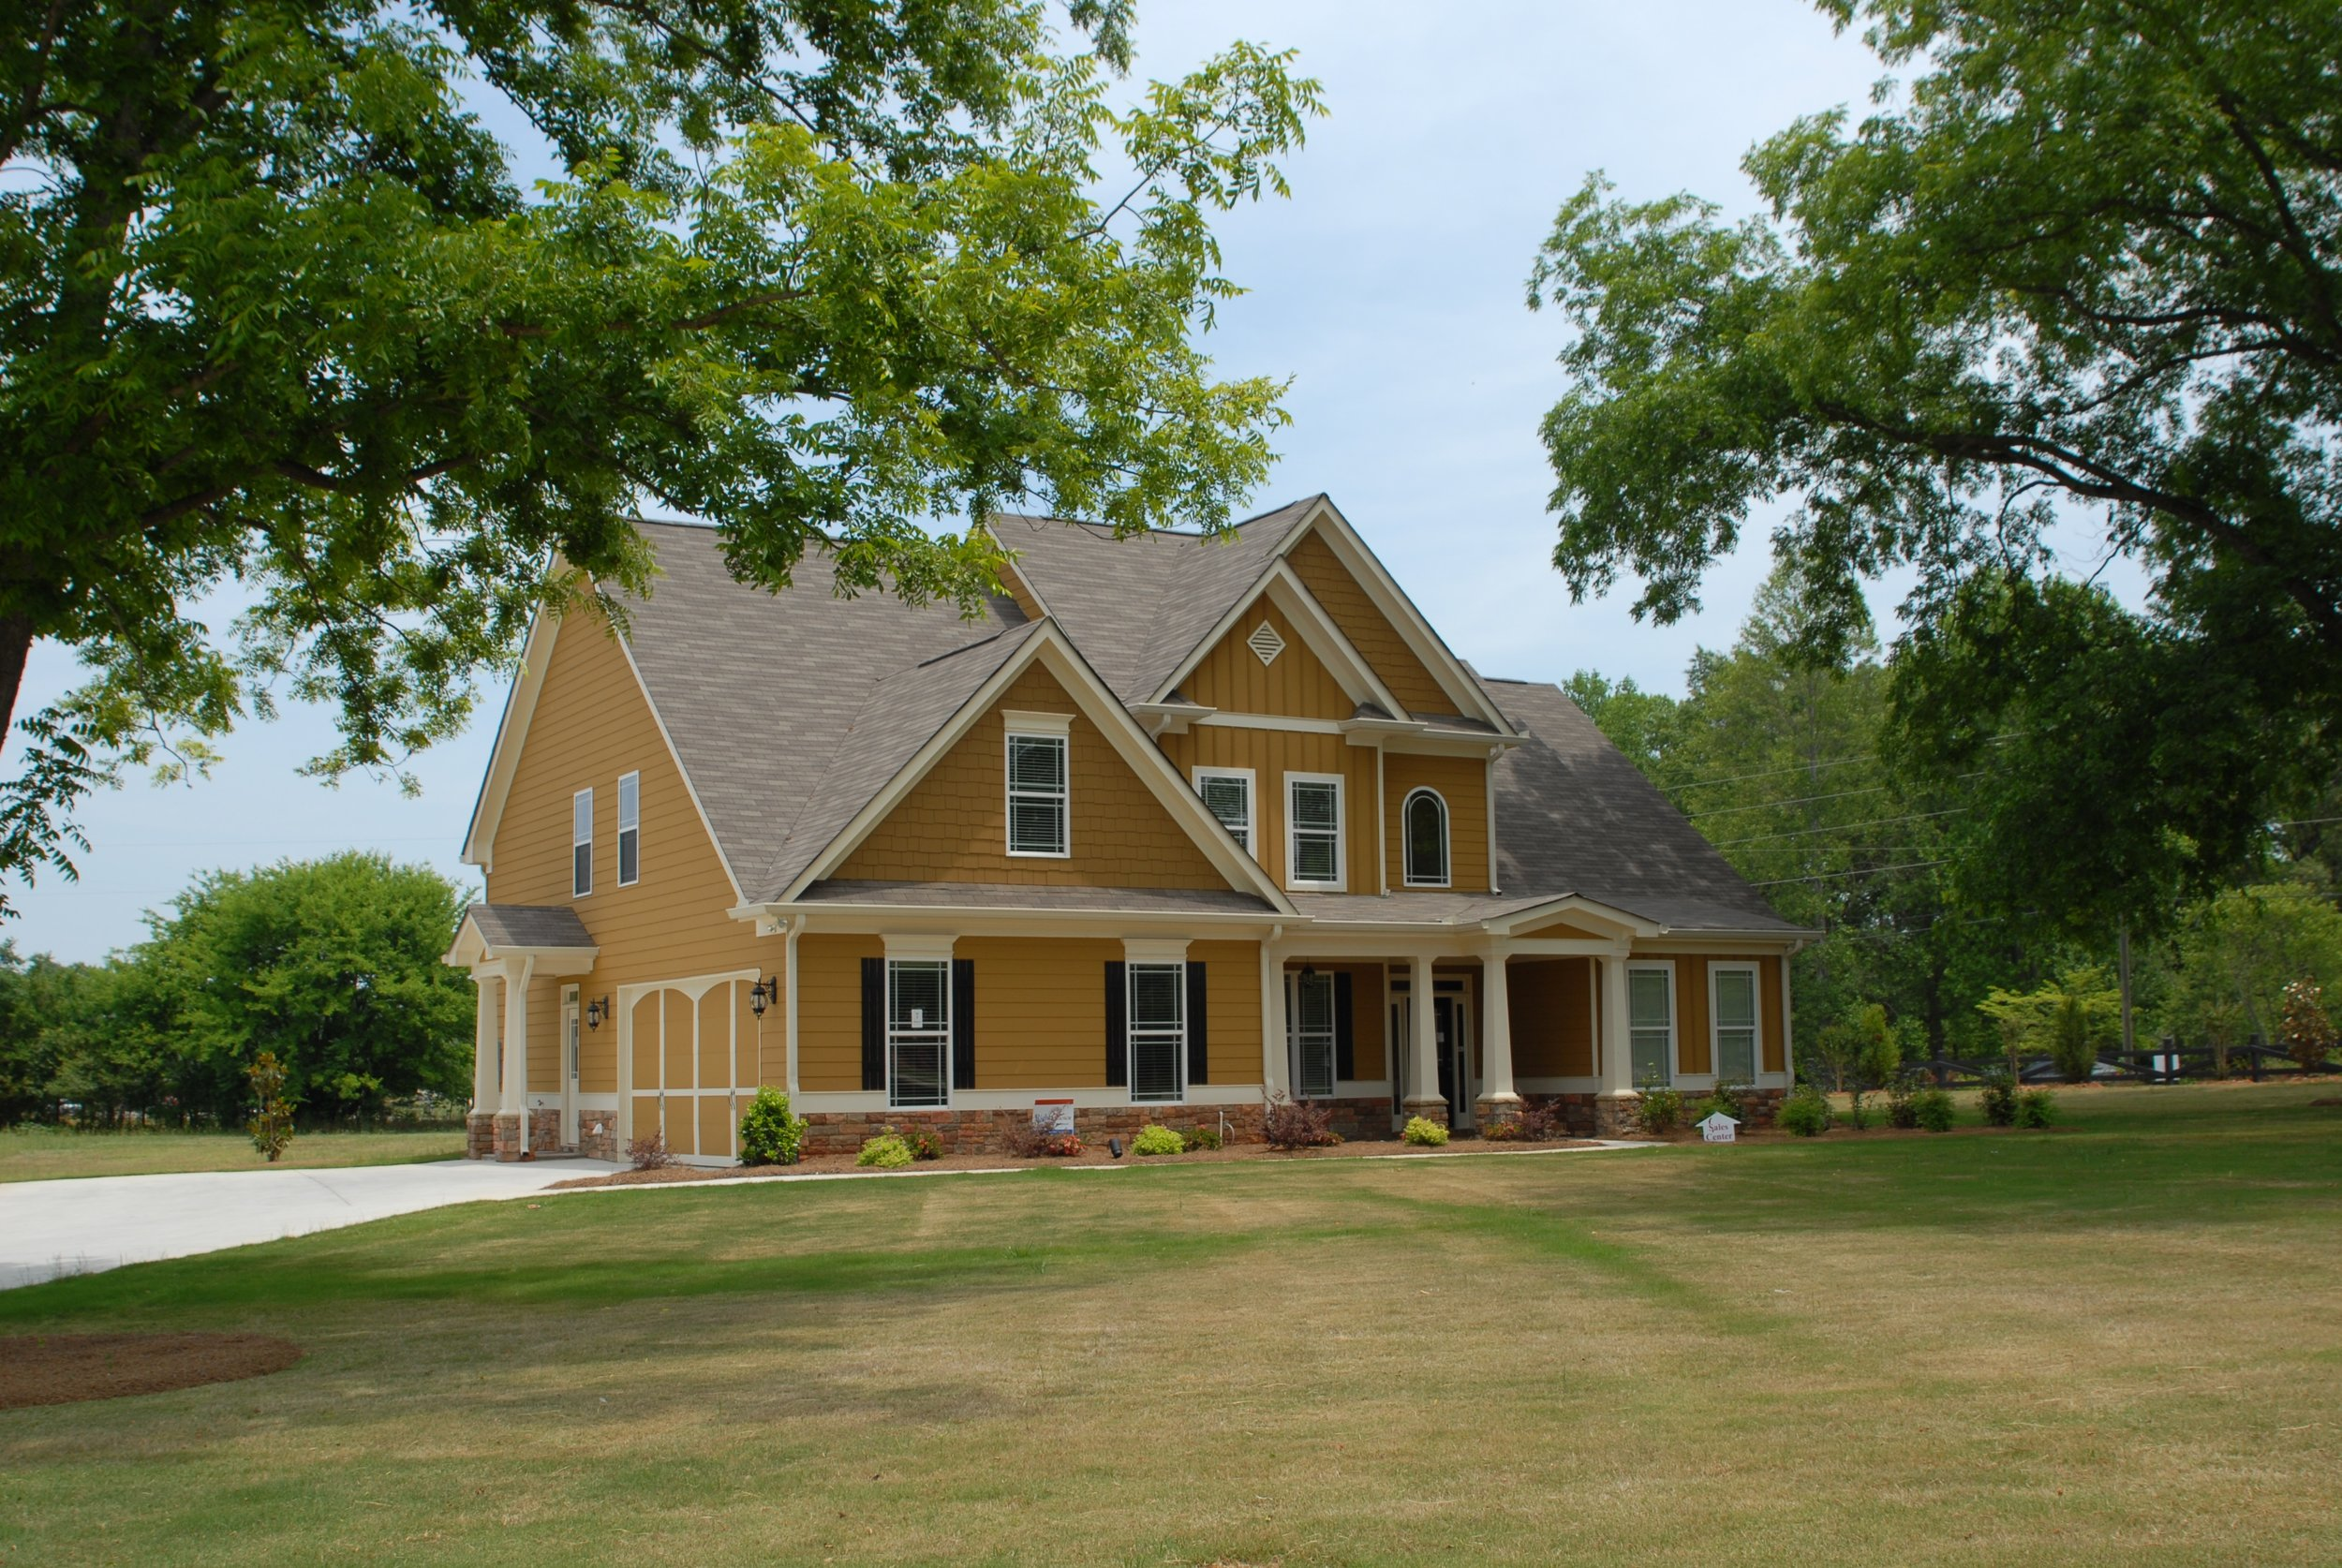 architecture-structure-sky-wood-lawn-mansion-488737-pxhere.com.jpg